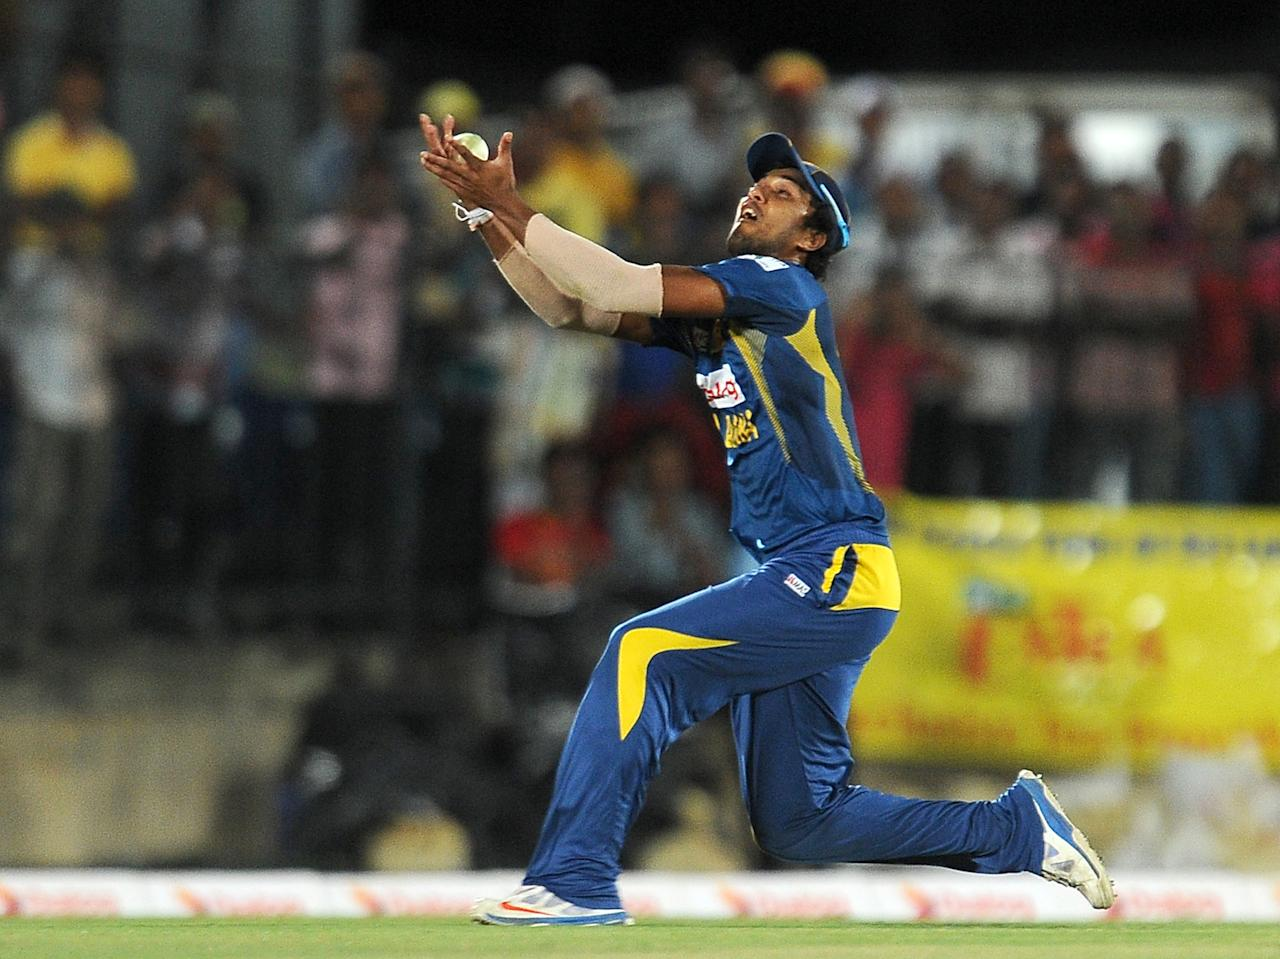 Sri Lankan cricket captain Dinesh Chandimal takes a catch to dismiss South African batsman David Miller during the second Twenty20 cricket match between Sri Lanka and South Africa at the Suriyawewa Mahinda Rajapakse International Cricket Stadium in the southern district of Hambantota on August 4,2013. AFP PHOTO / LAKRUWAN WANNIARACHCHI